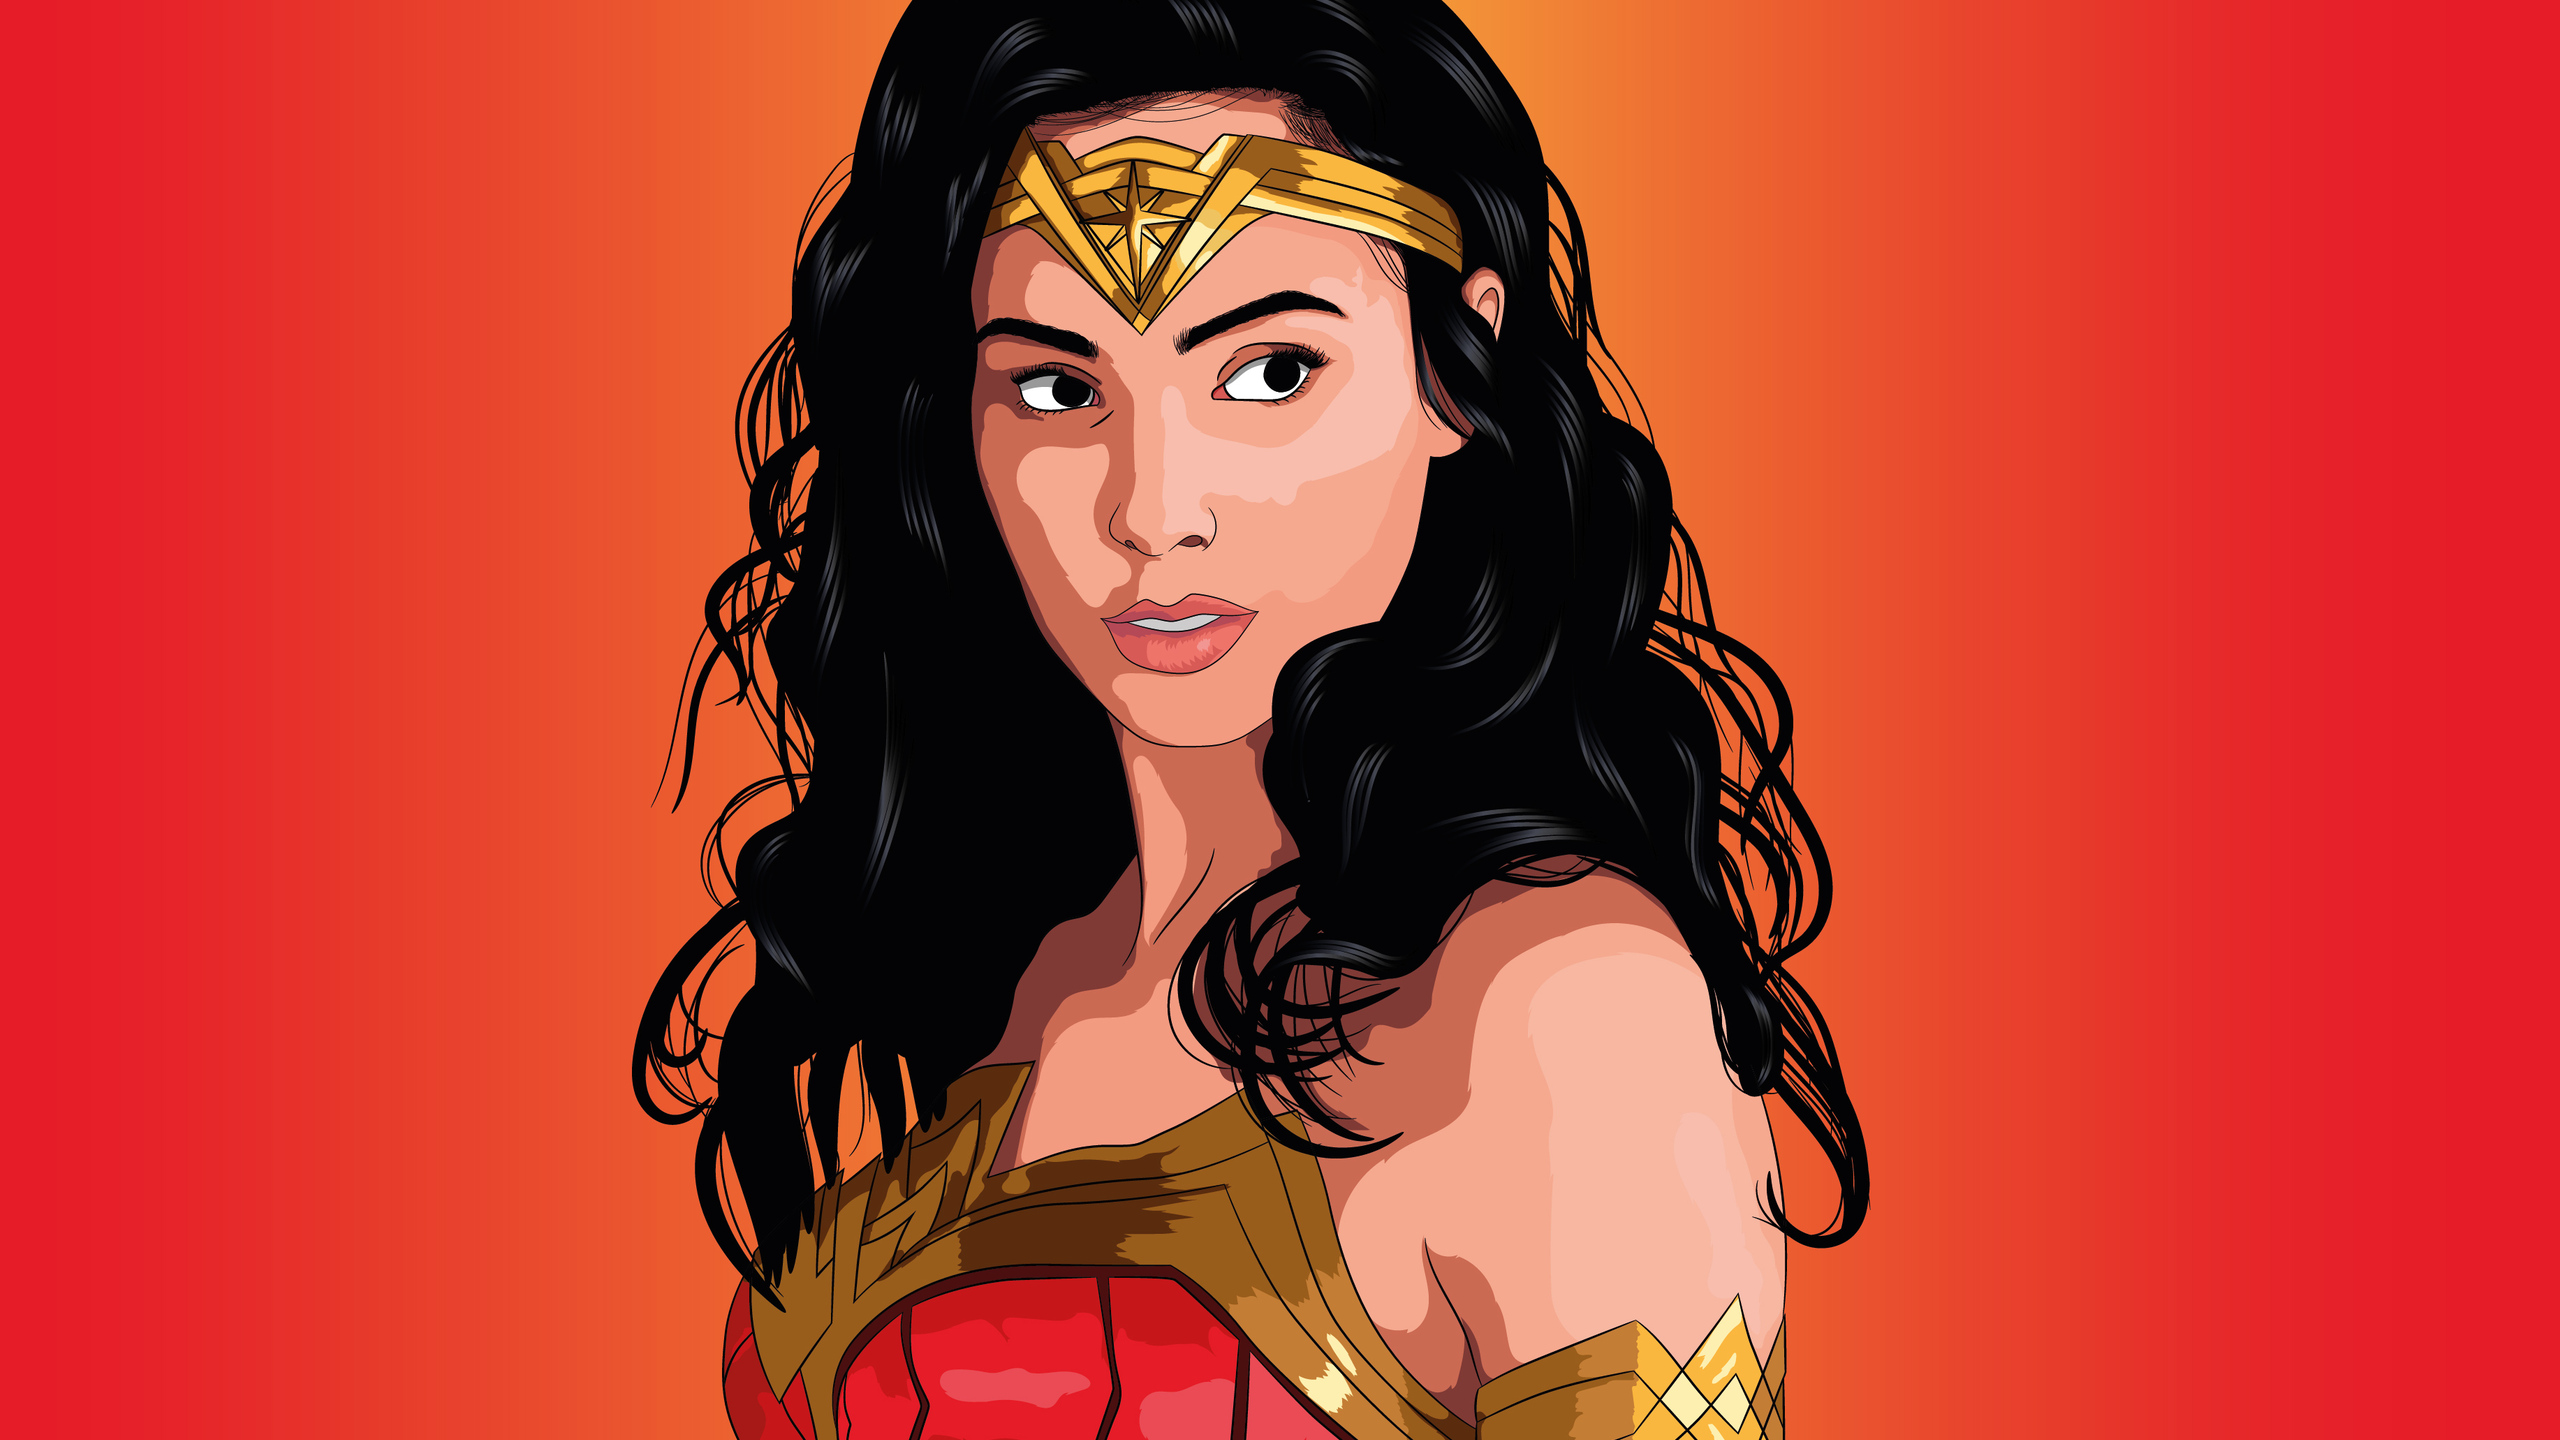 wonder-woman-fractal-art-4k-0l.jpg